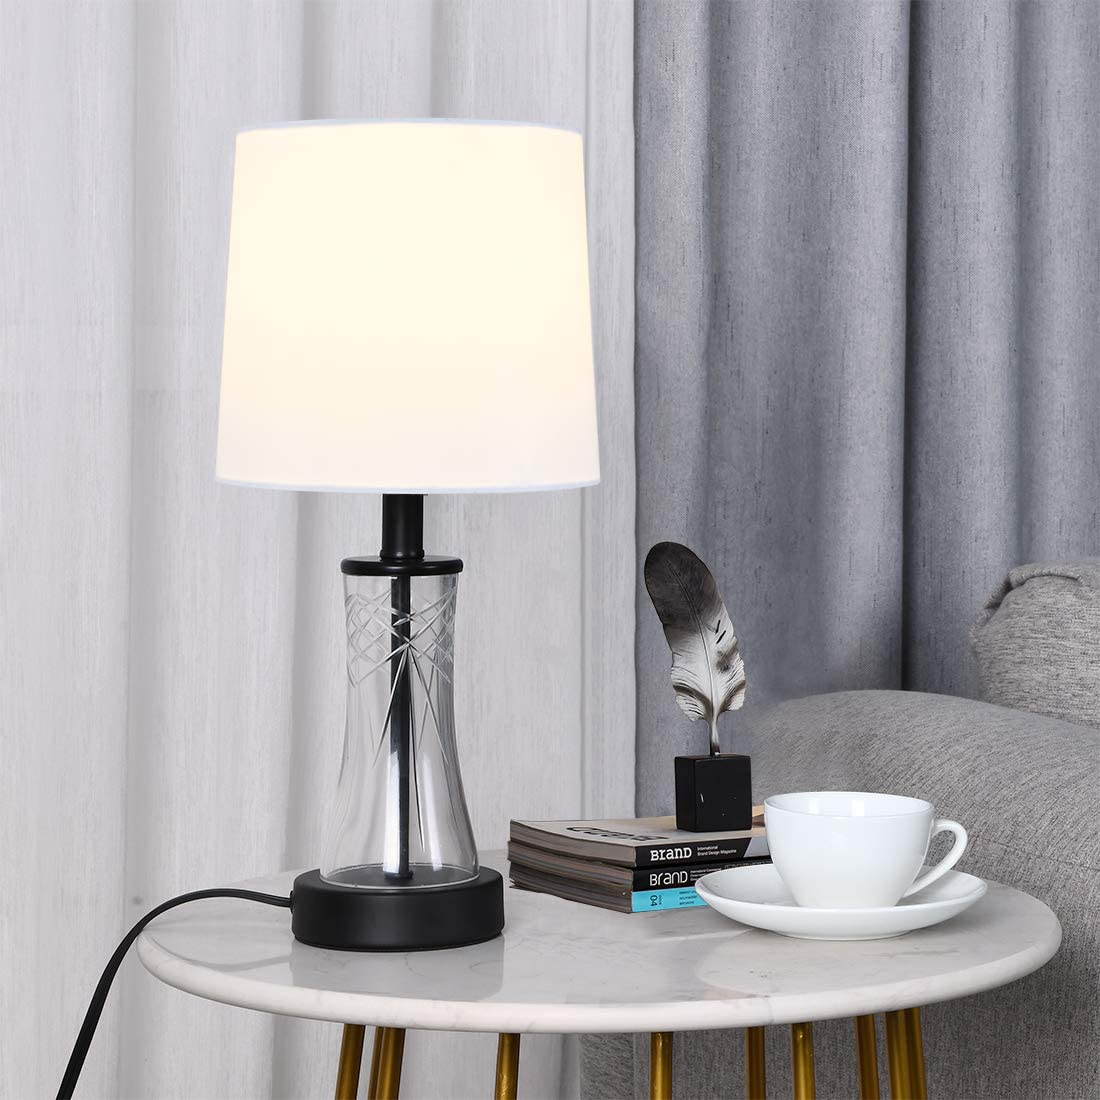 Amazon Com Popity Home Farmhouse Black Clear Glass Table Lamp Modern Accent Small Bedroom Bedside Lamps Mini Desk Lamps With White Fabric Shades For Living Room Nightstand Home Improvement